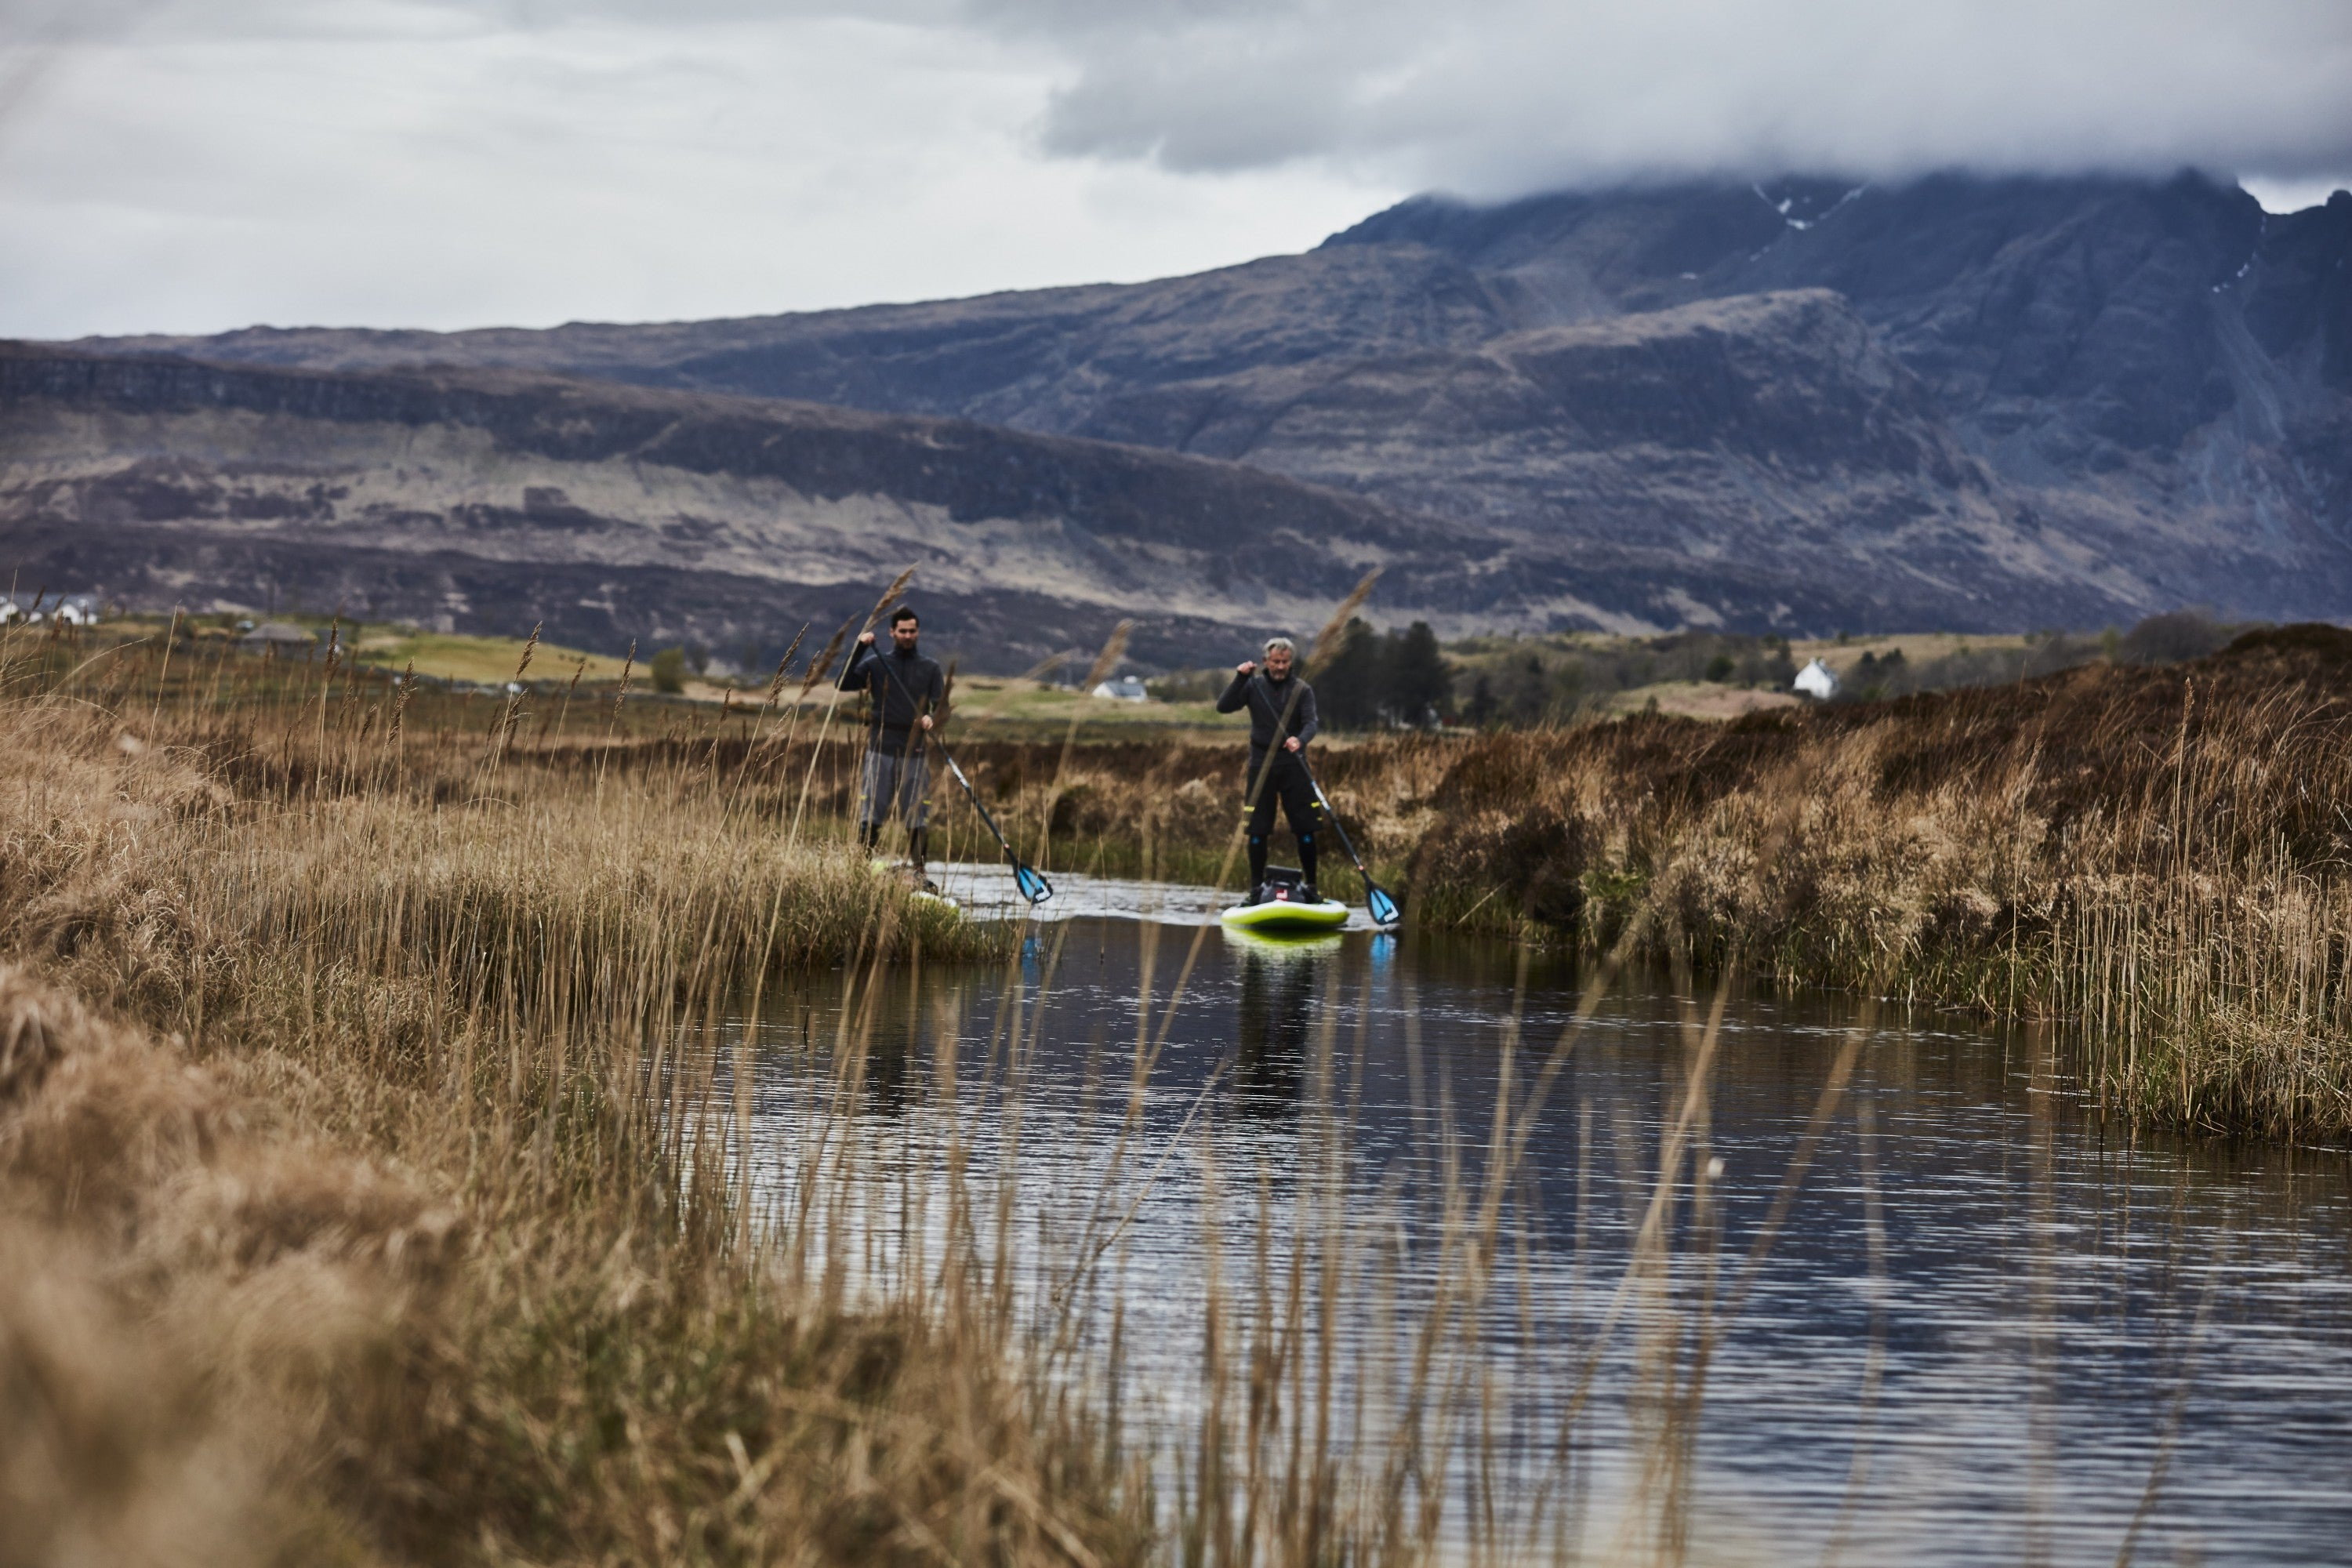 Men Paddling through Scotland in cold weather